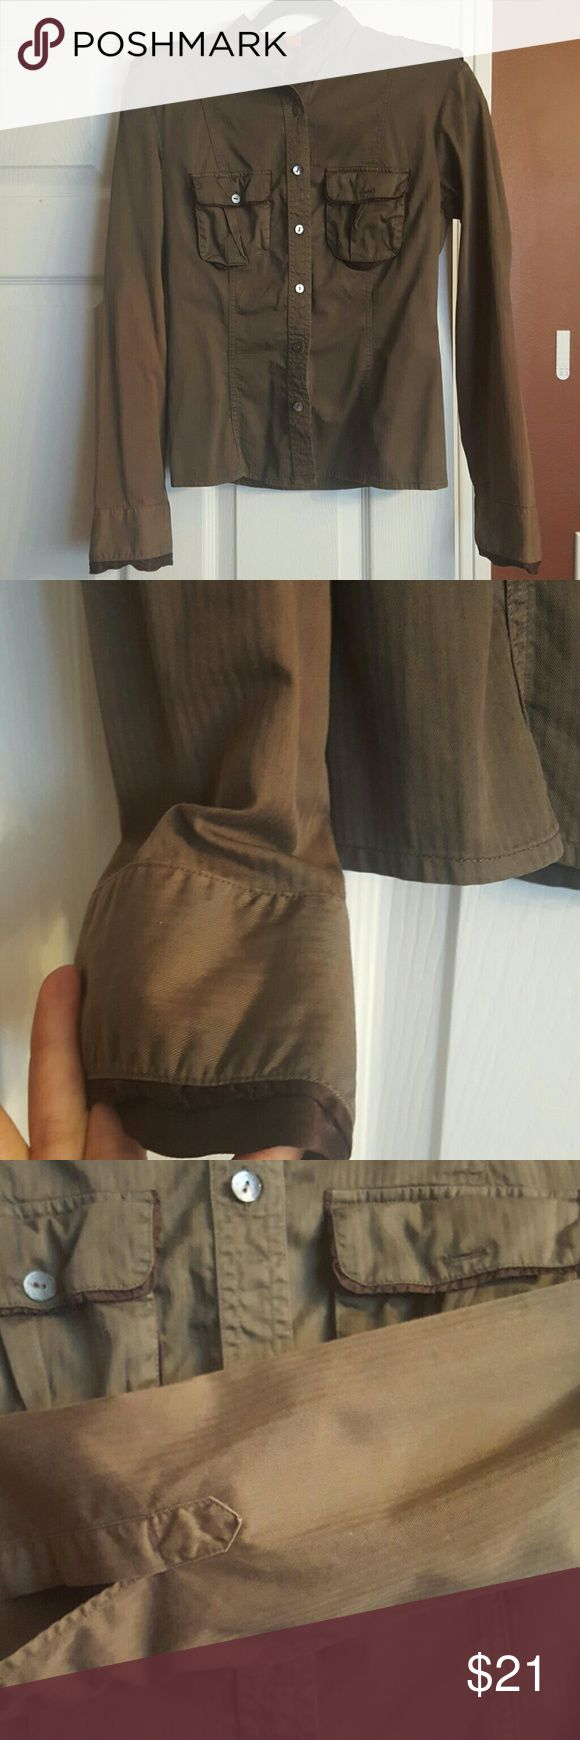 micro herringbone olive brown shirt Missing one pocket button and sleeves have faded color. Military style with shoulder epaulettes and satin lined cargo pockets, ruffle at sleeve hem. Mother of pearl buttons. Boss Hugo boss orange label. BOSS ORANGE Tops Button Down Shirts